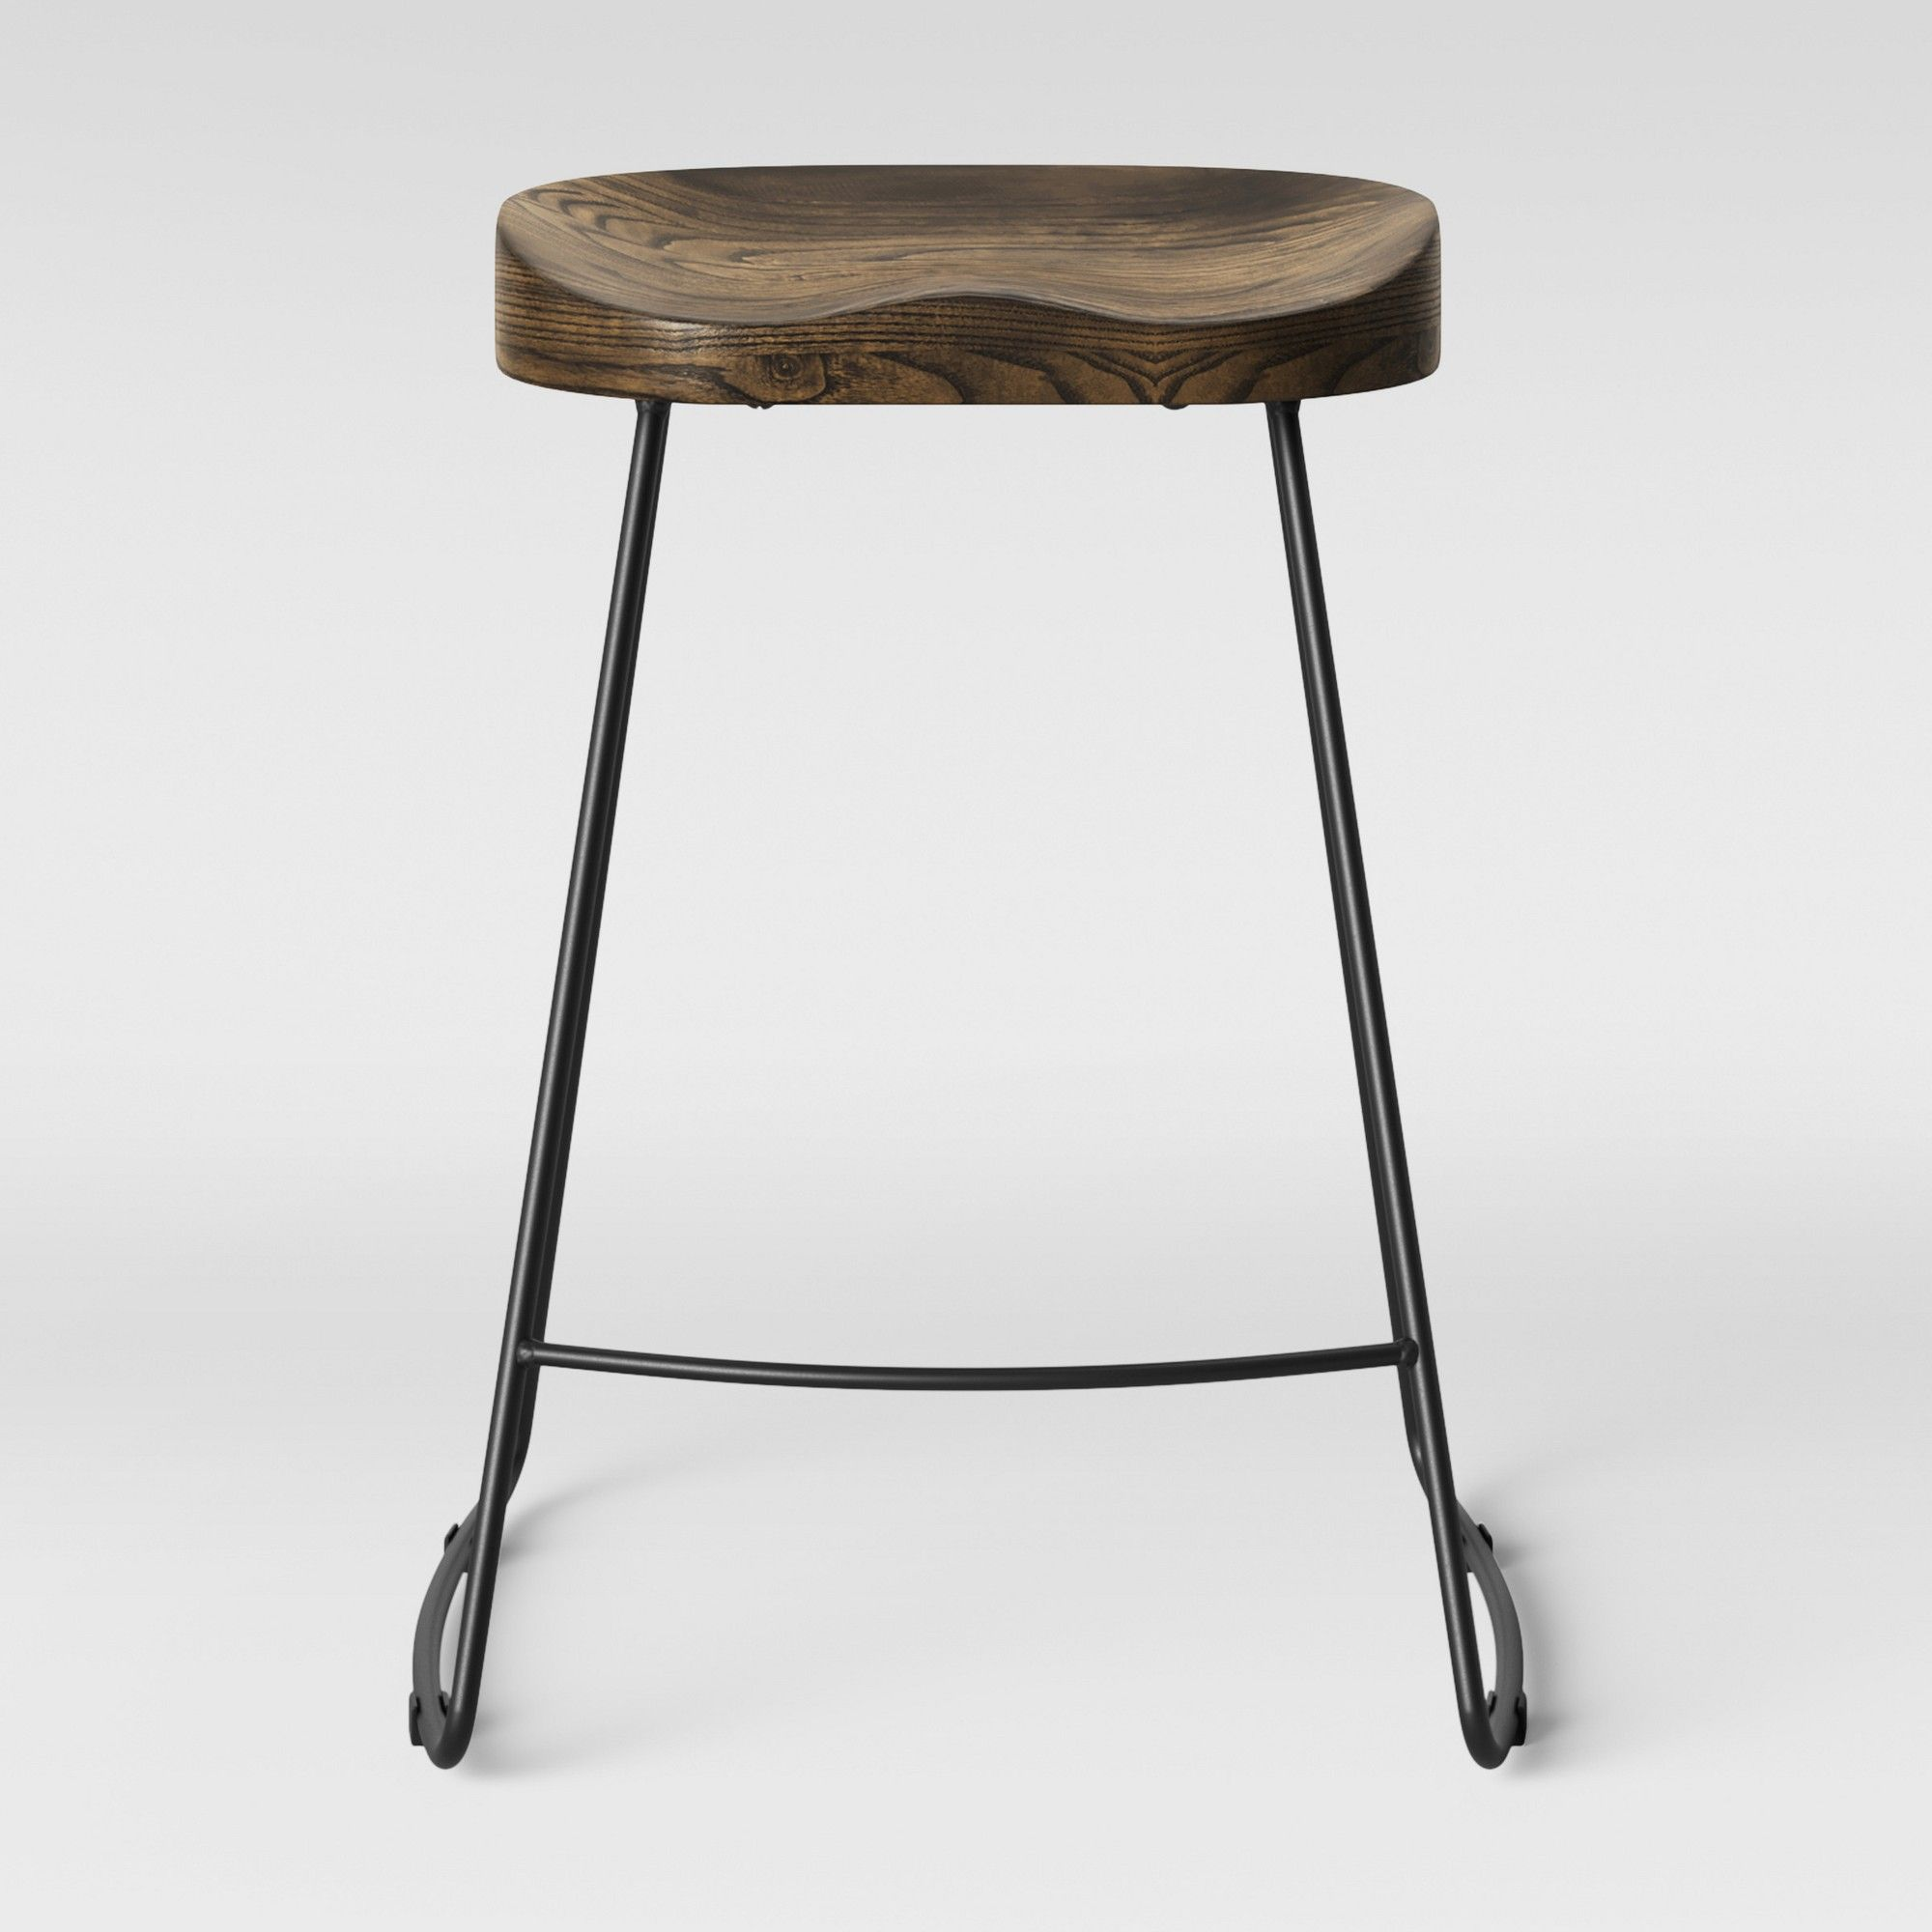 Amazing Hull Low Back Counter Stool Wood Metal Black Threshold In Dailytribune Chair Design For Home Dailytribuneorg